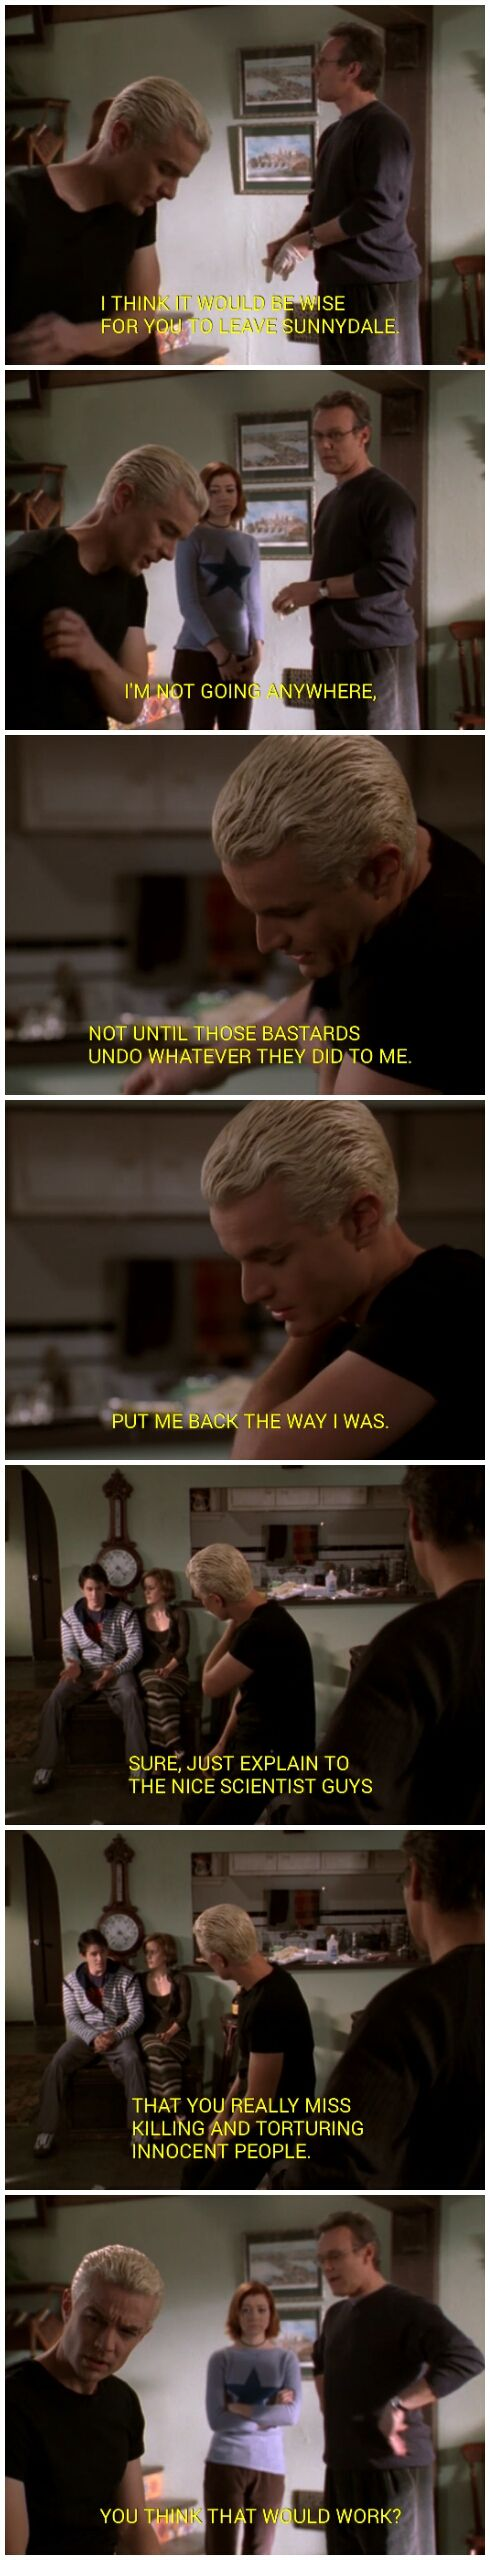 You think that would work? - Spike - Buffy the Vampire Slayer